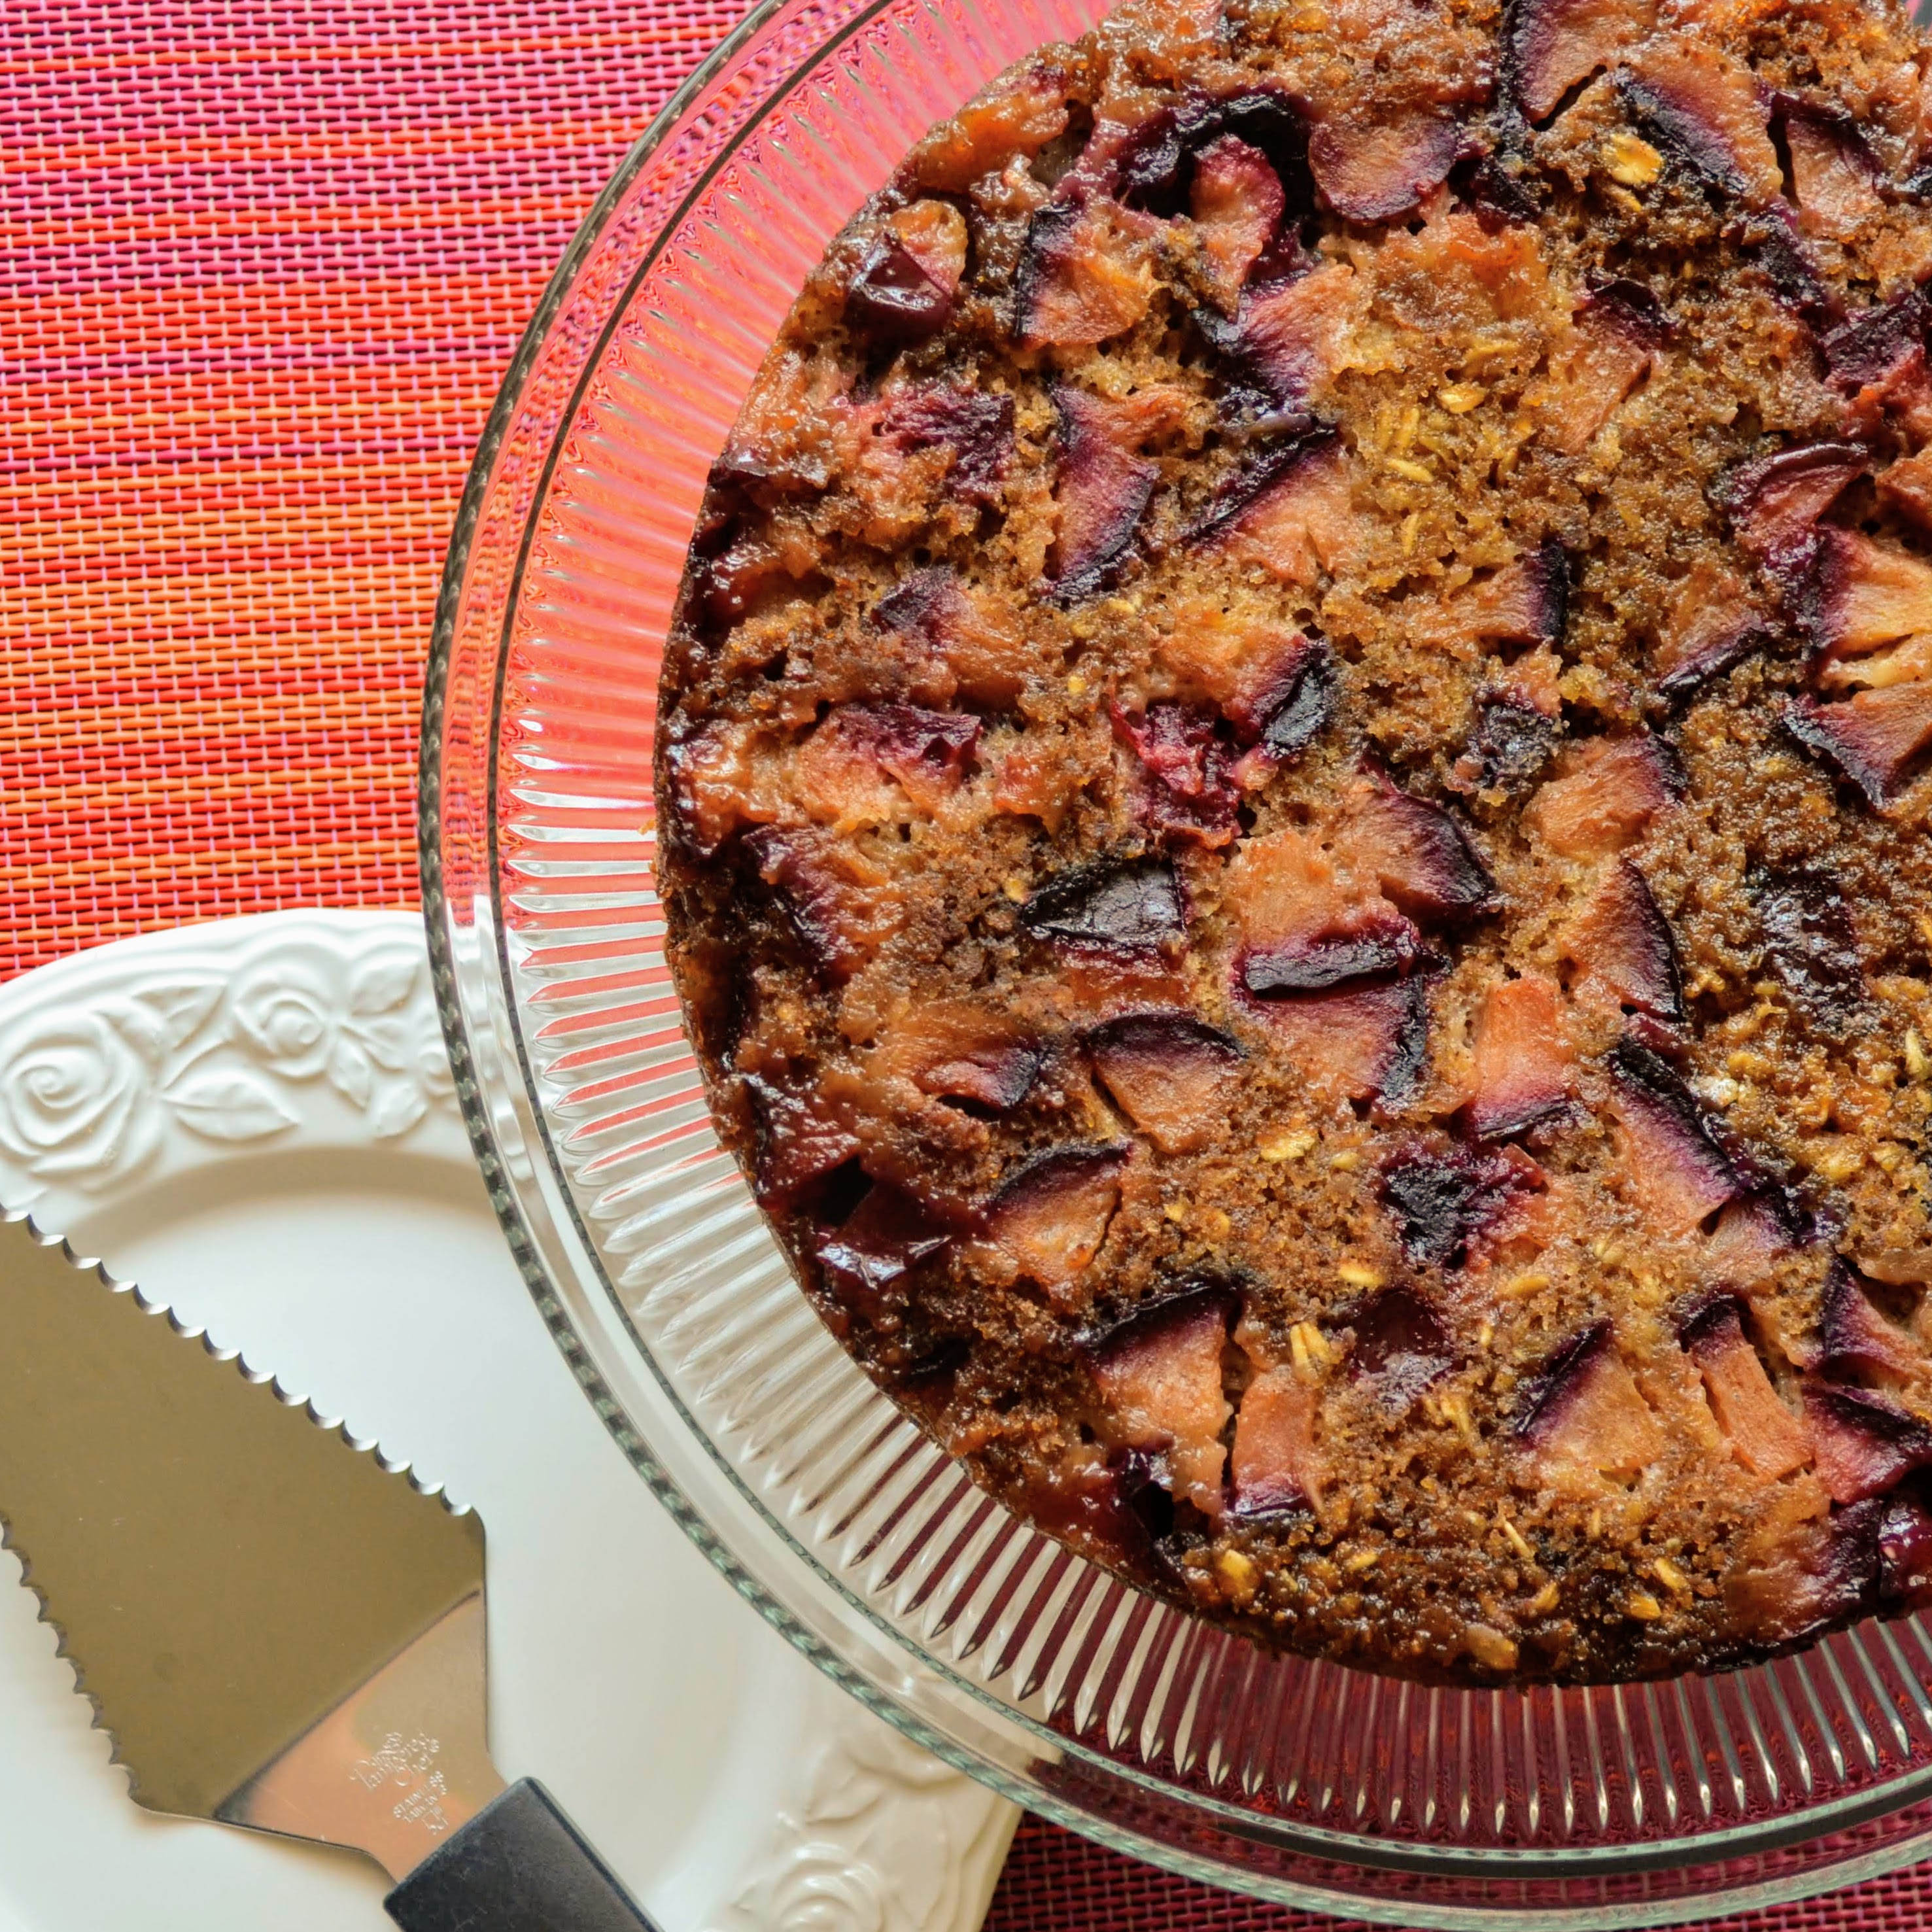 Spiced Plum Upside-Down Cake with Oats